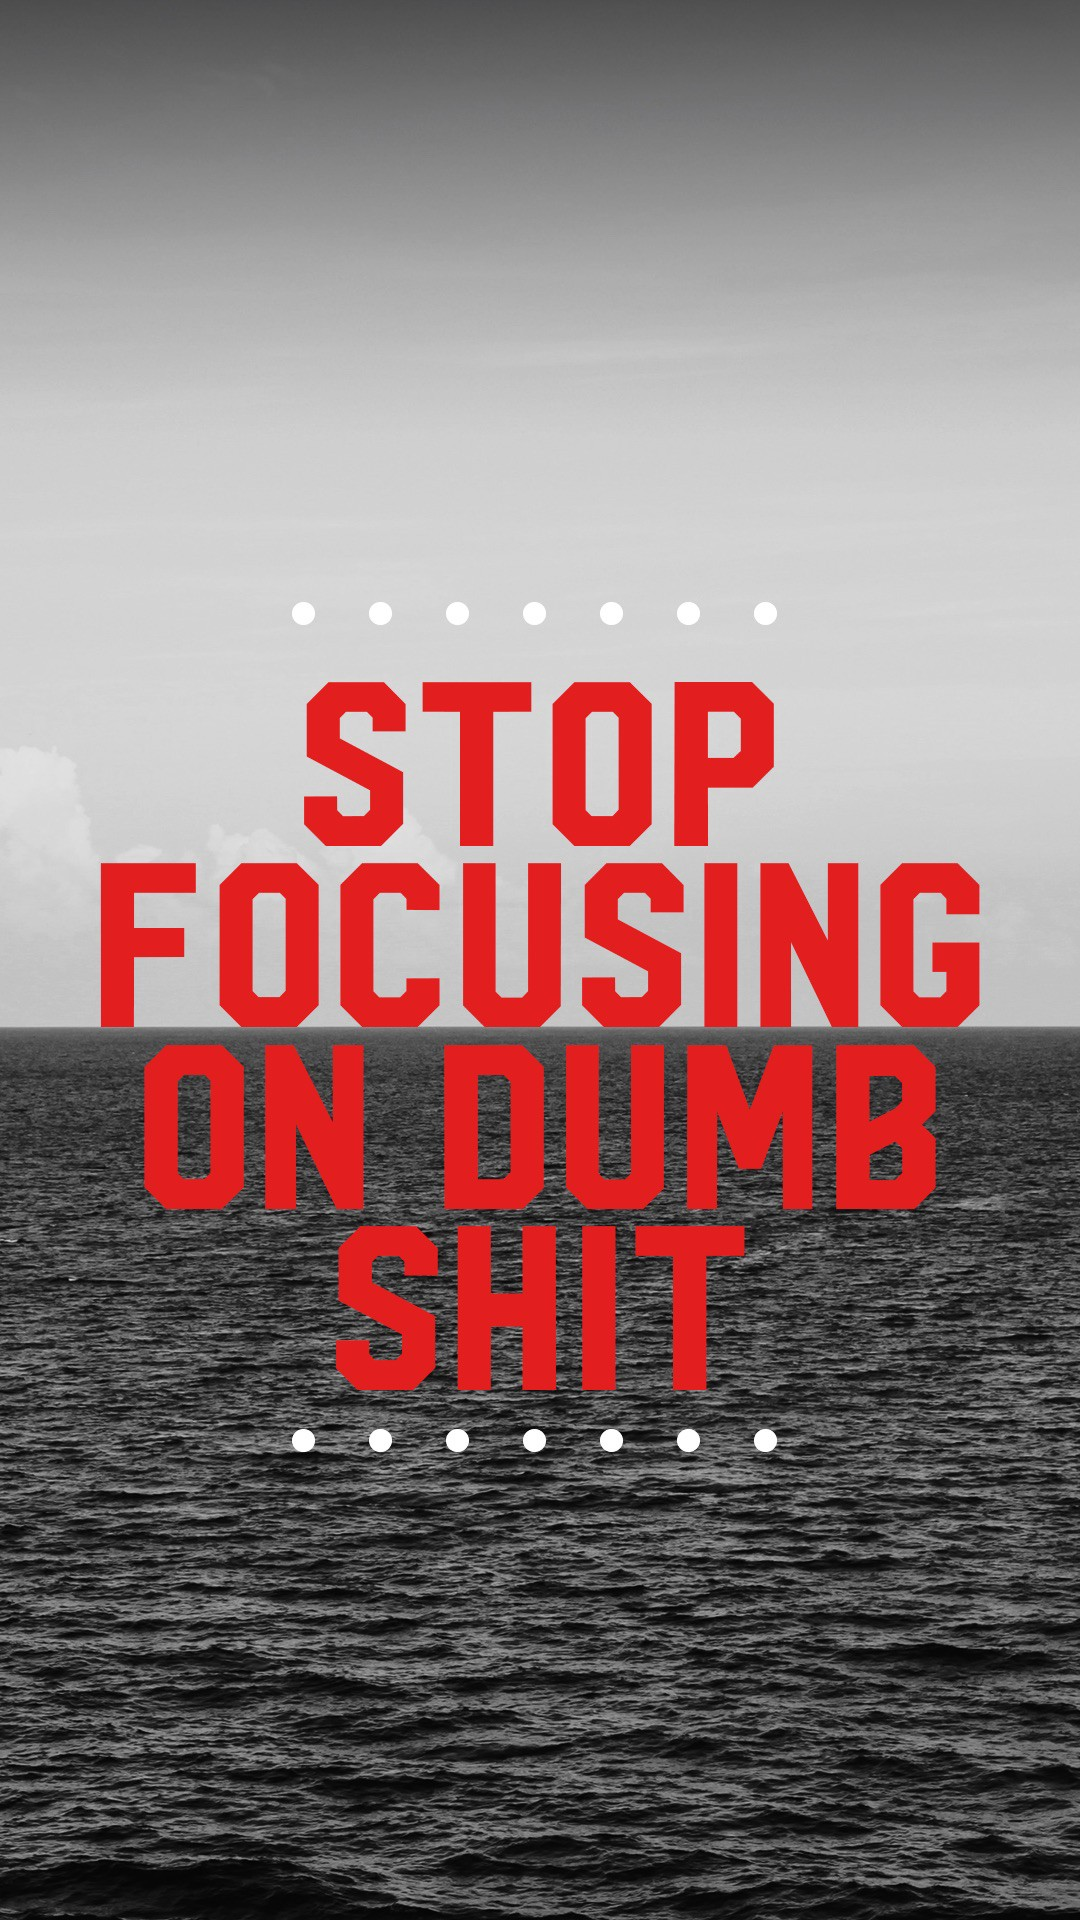 Funny Quote Wallpapers For Phone Garyvee Wallpapers Gary Vaynerchuk Medium